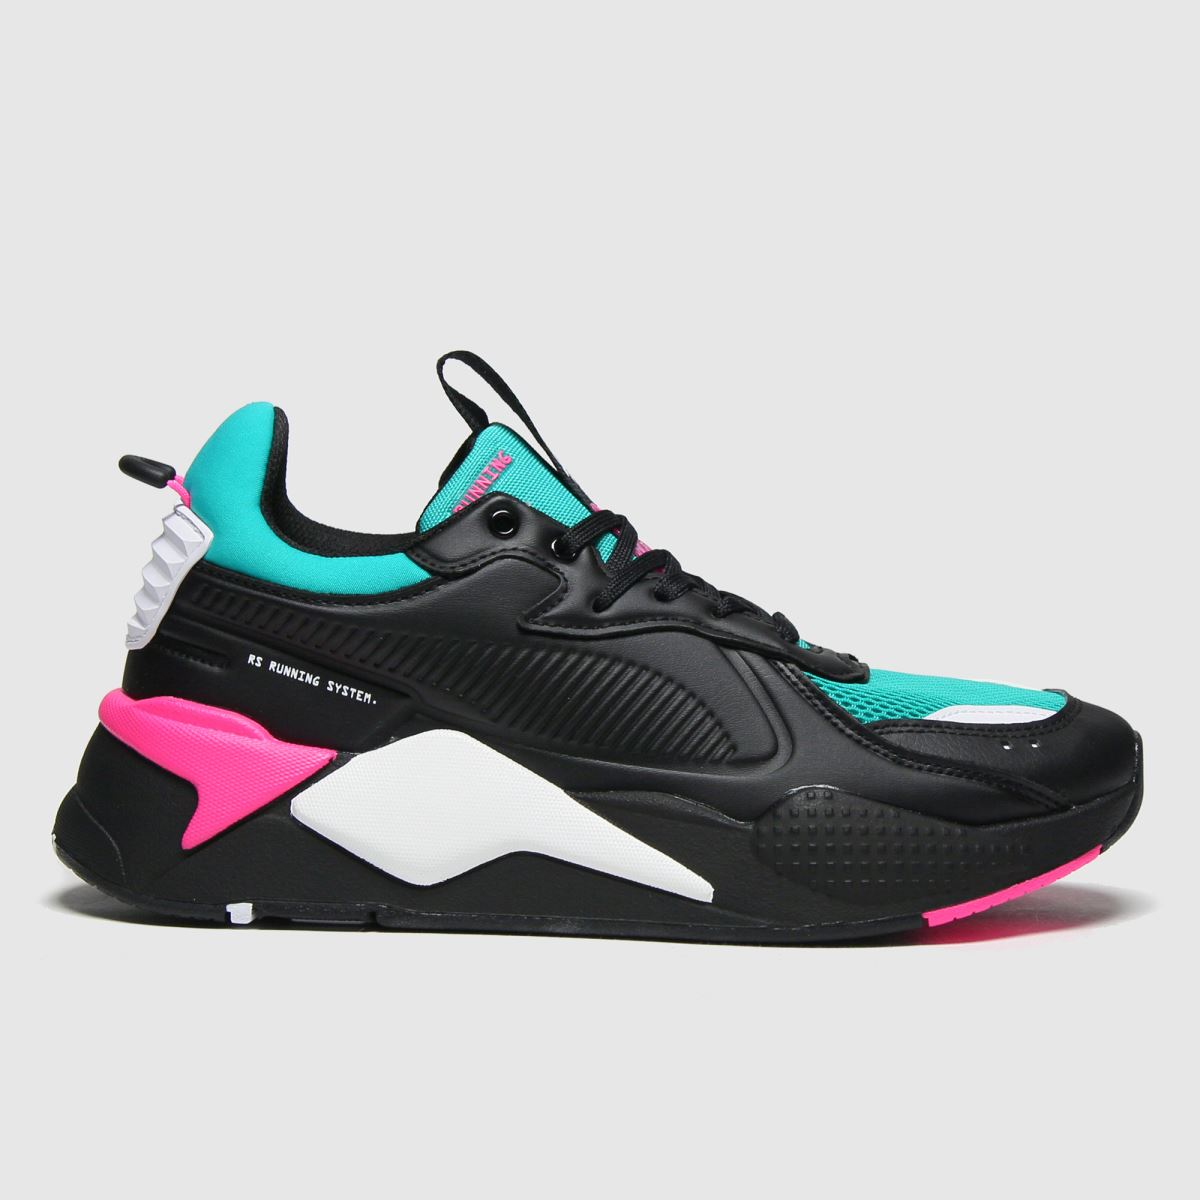 PUMA Black & Green Rs-x Master Trainers